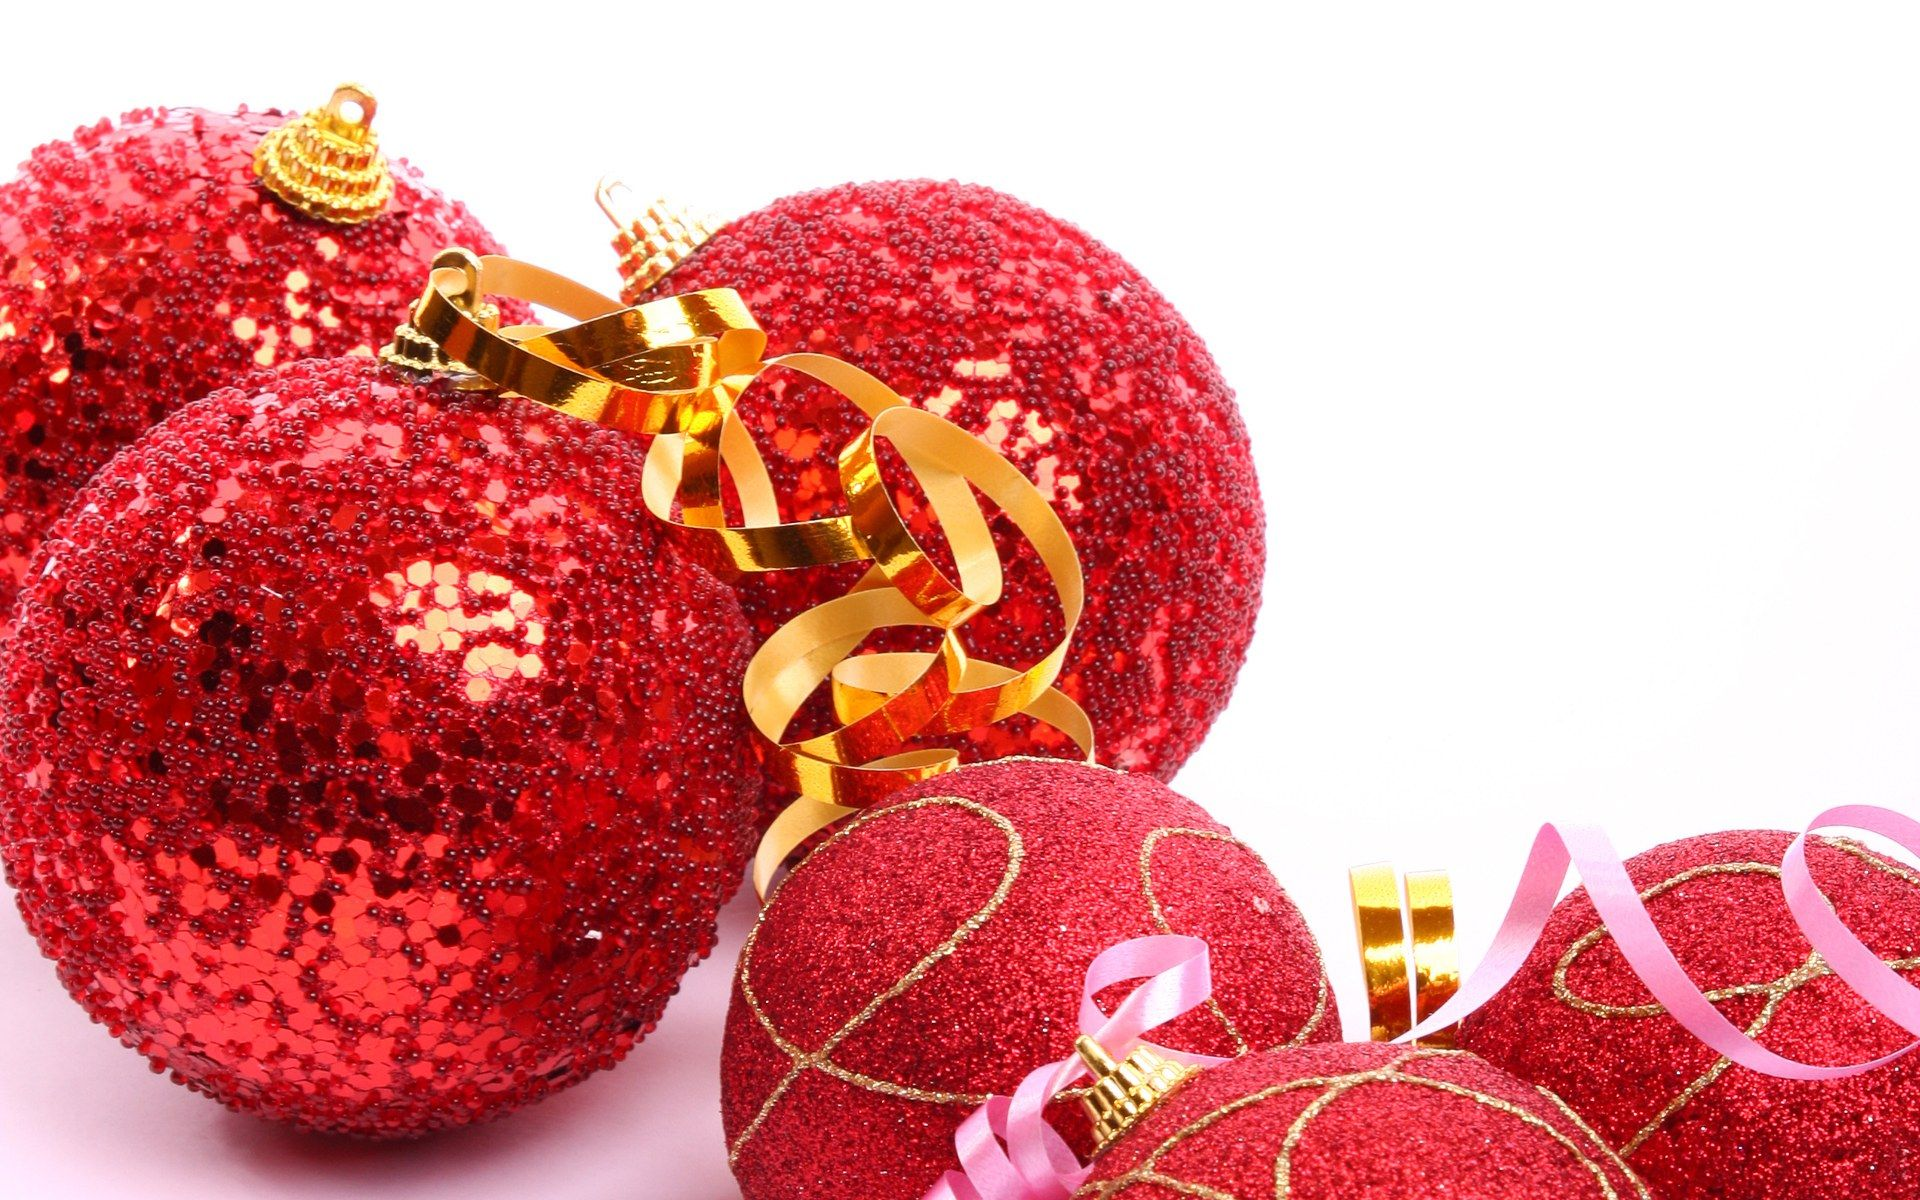 christmas ball balls wallpapers red bauble tree holiday colorful - Red Christmas Balls